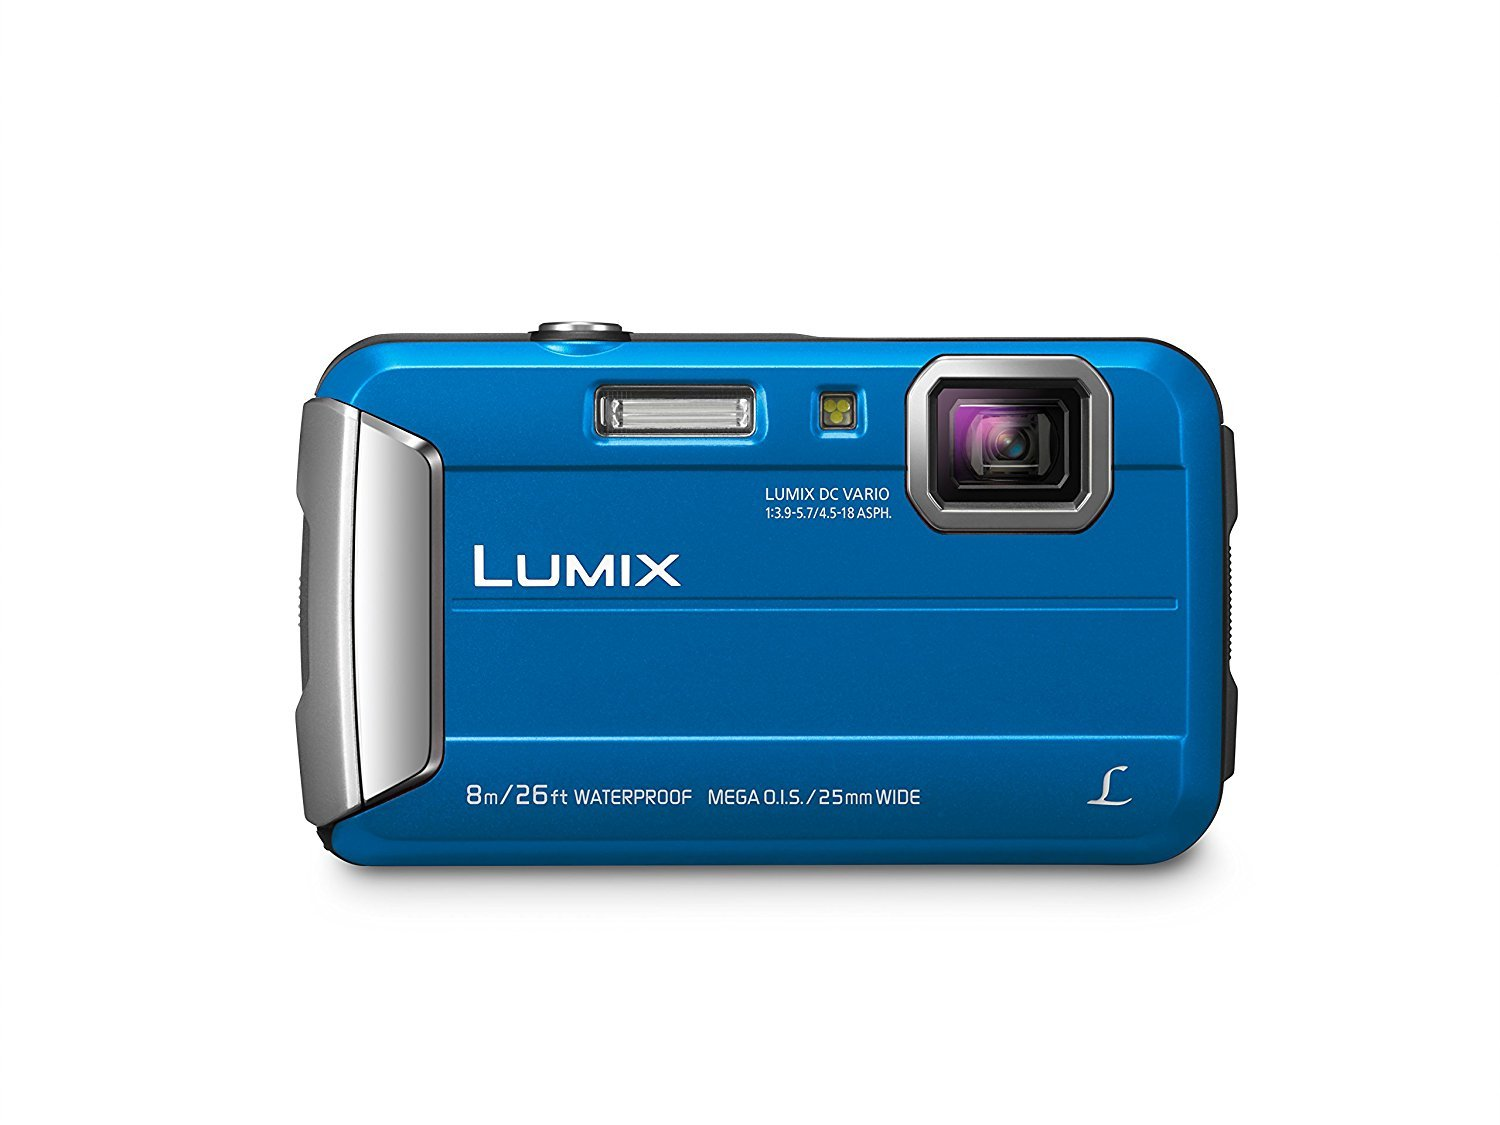 Panasonic DMCTS30A 16 Waterproof Digital Camera with 4X Optical Image Stabilized Zoom with 2.7' LCD, Blue